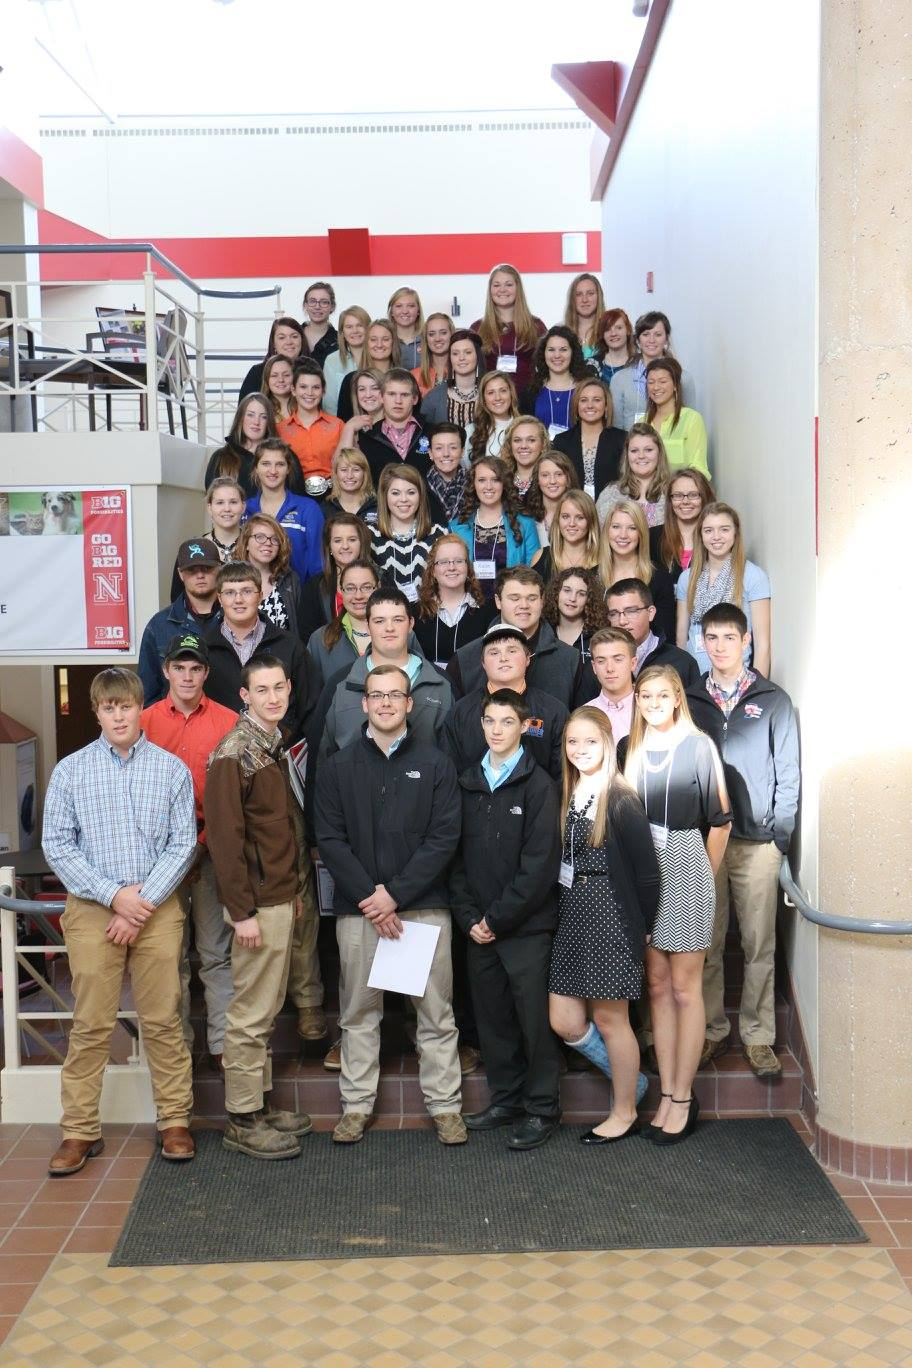 2014 Nebraska Youth Beef Leadership Symposium participants.  Photo courtesy of Lindsay Chichester.